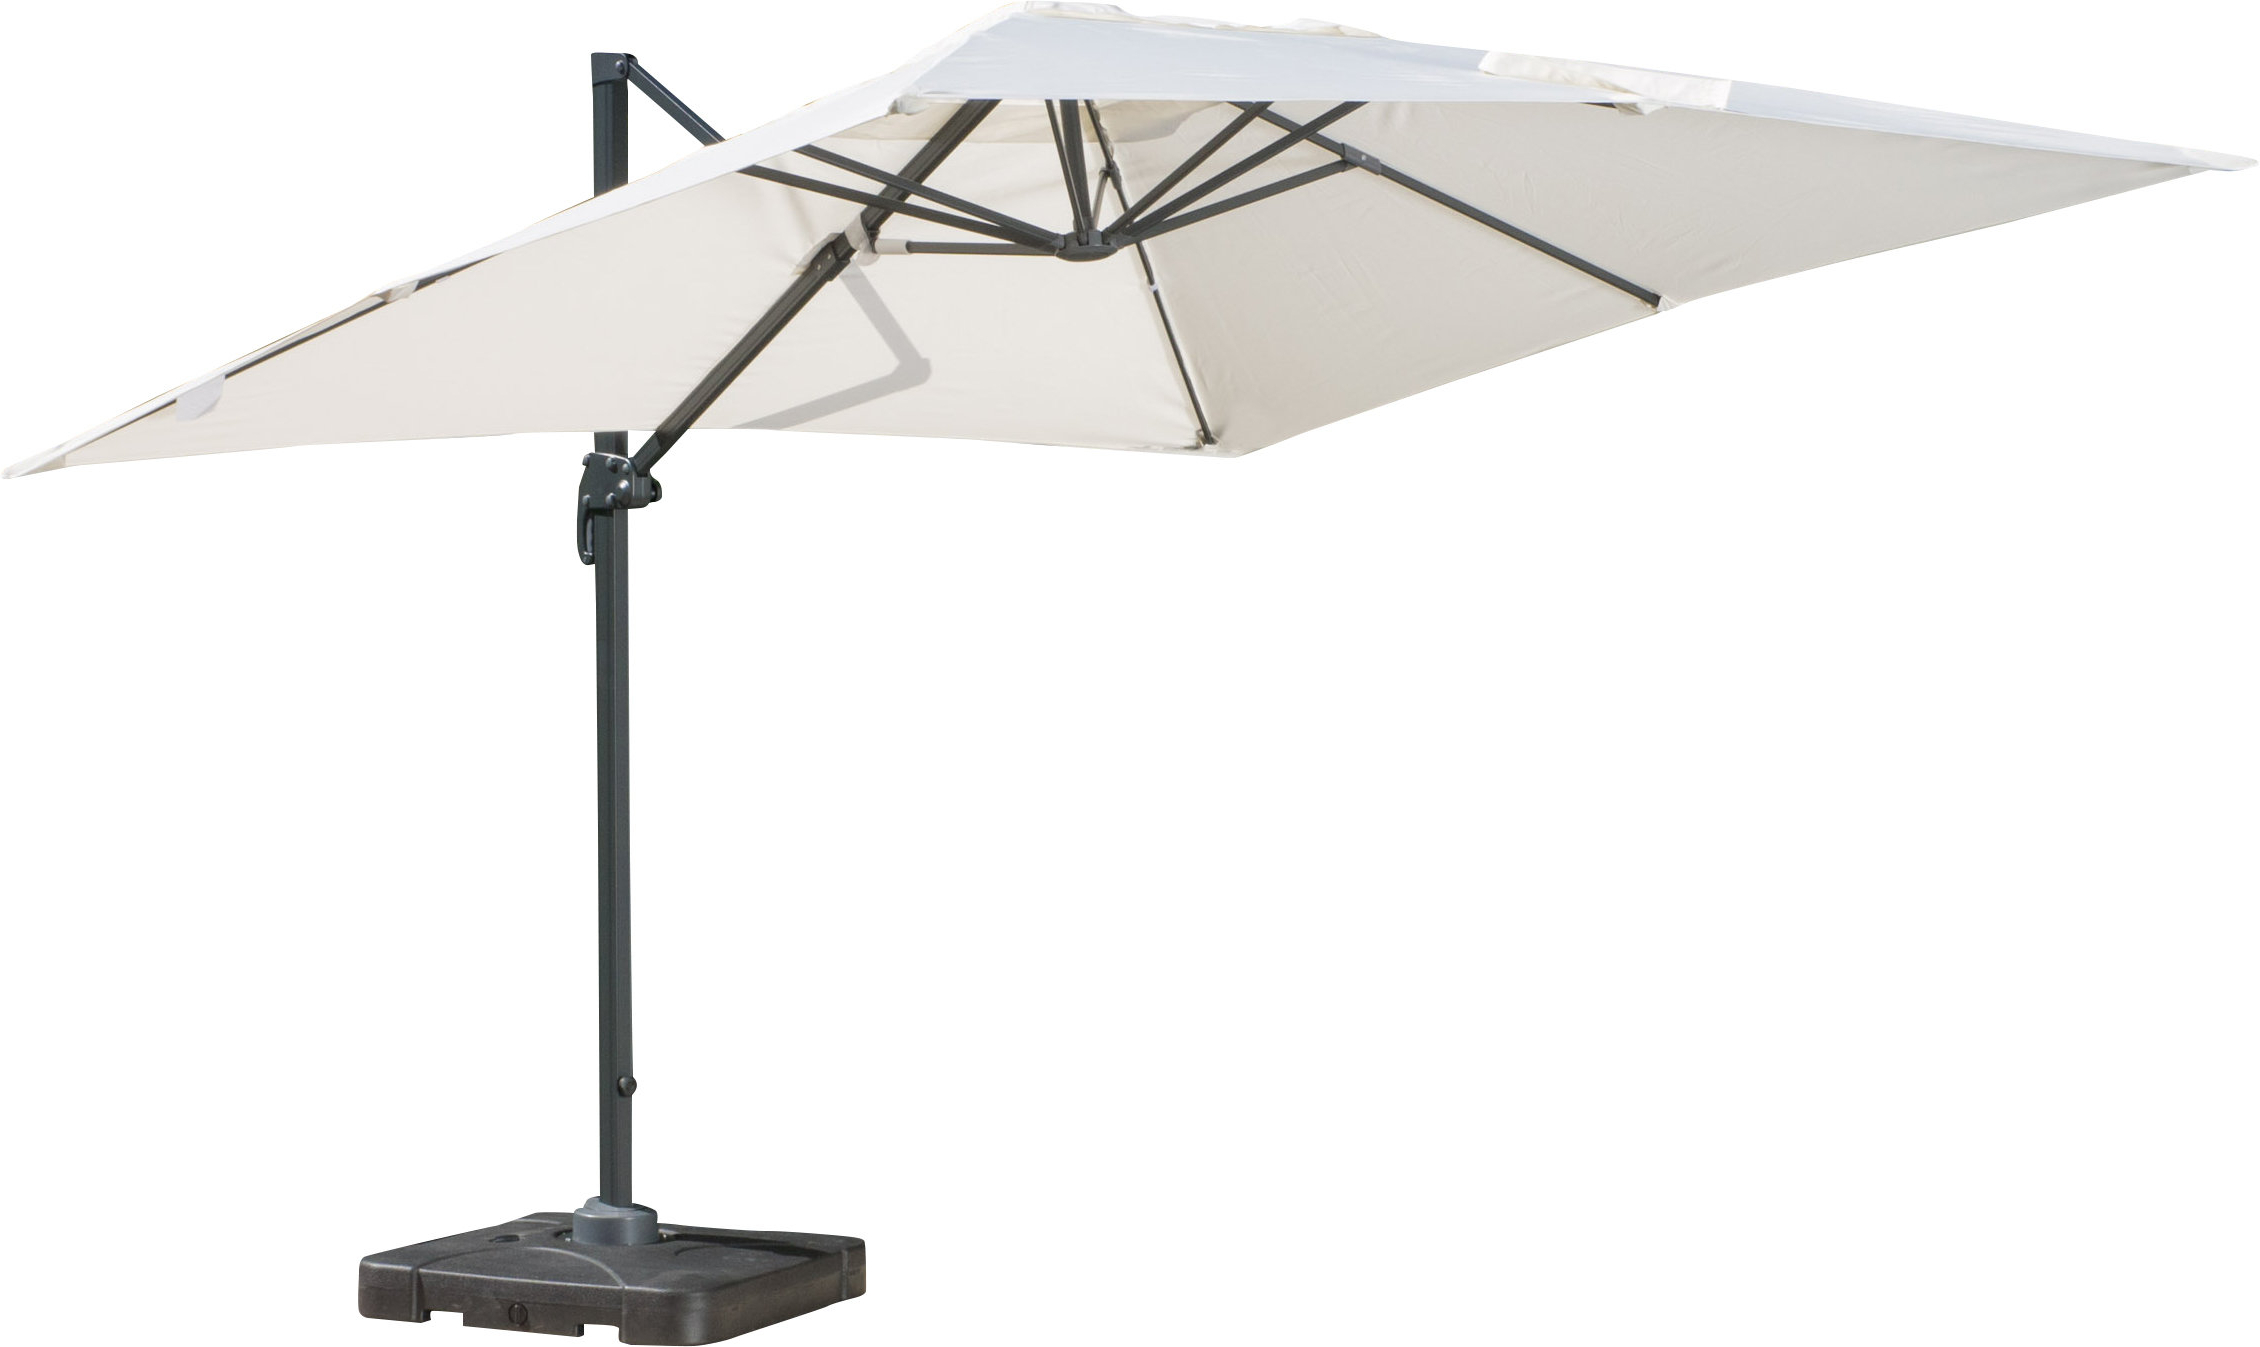 Vassalboro Cantilever Umbrellas Within Trendy Boracay 10' Square Cantilever Umbrella (Gallery 9 of 20)